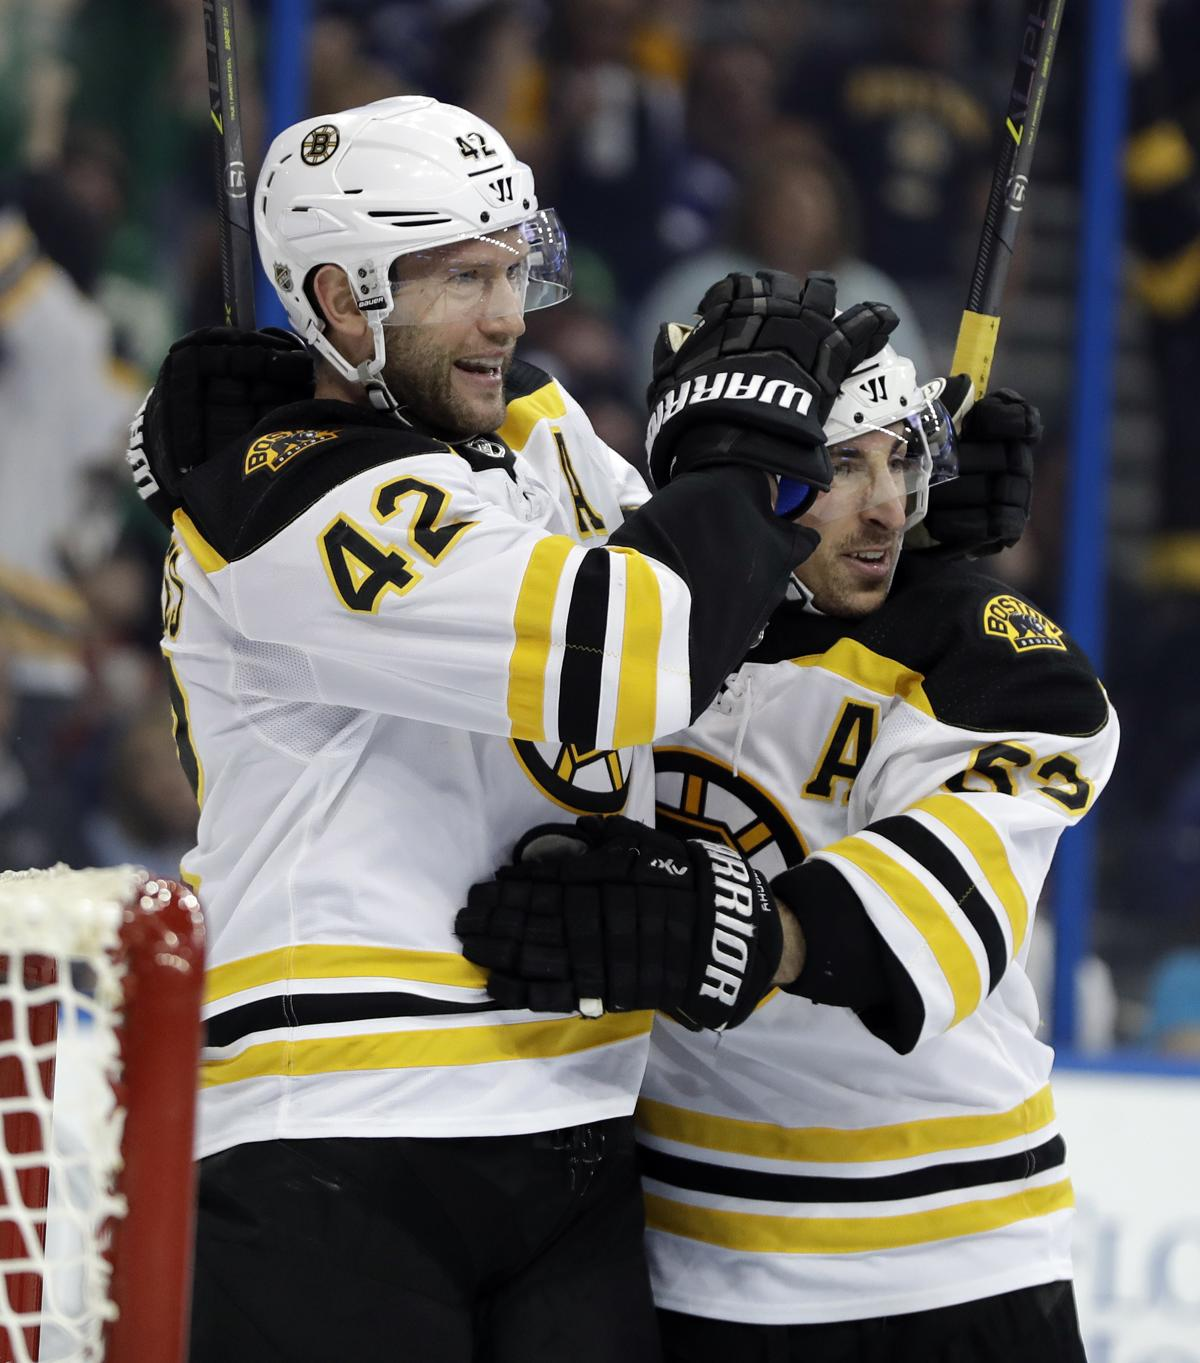 David Backes injured late in first period of Bruins game 84b2c6c1f